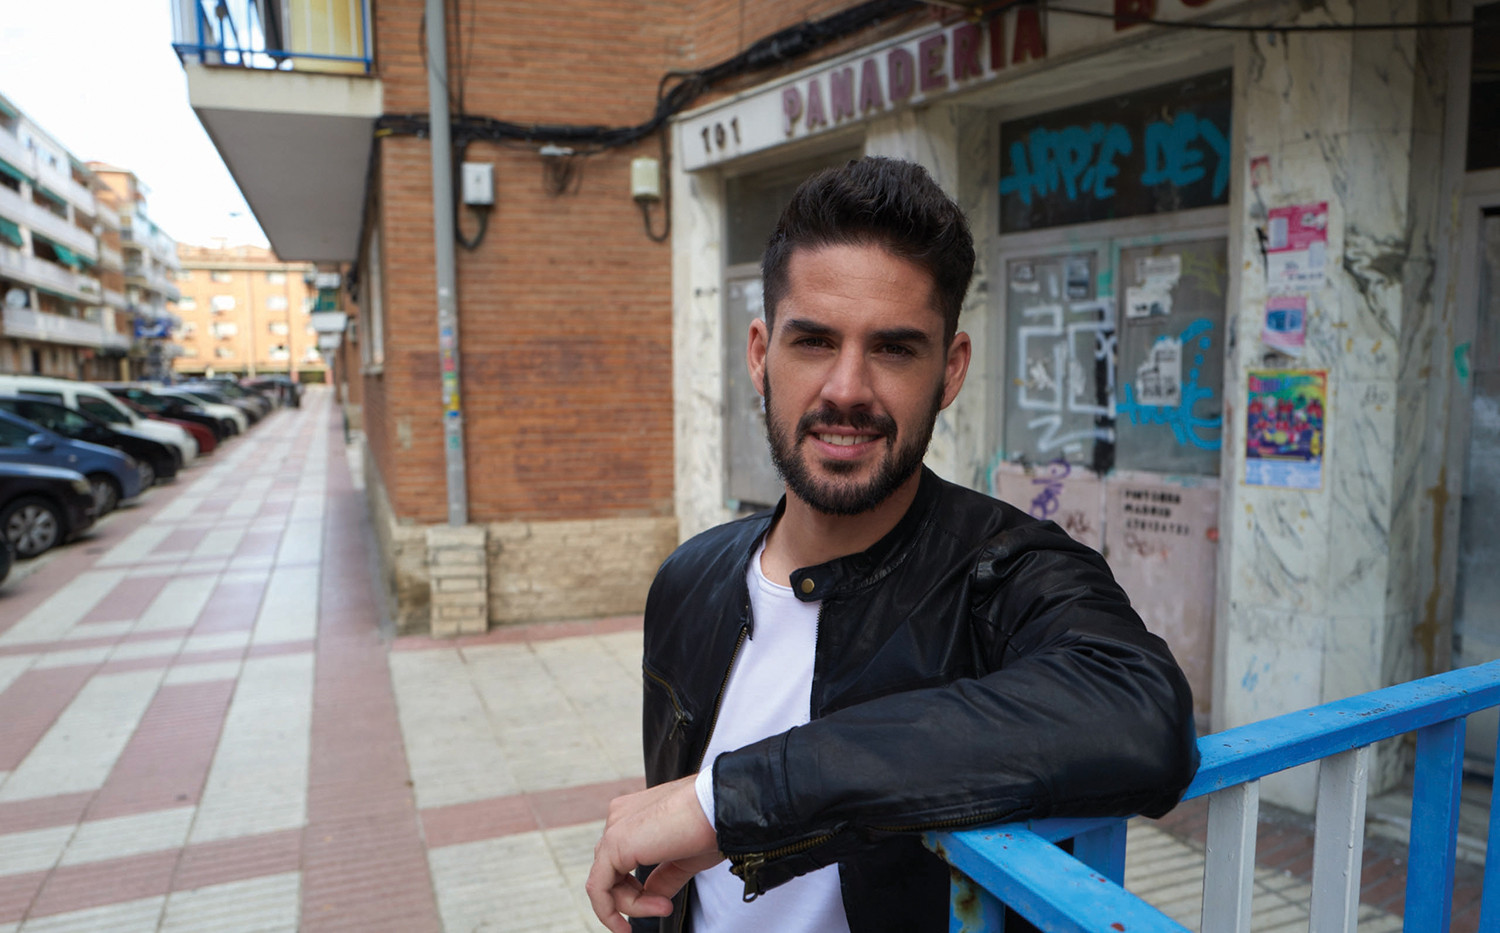 Isco on set for OTRO (photo by Greg Will